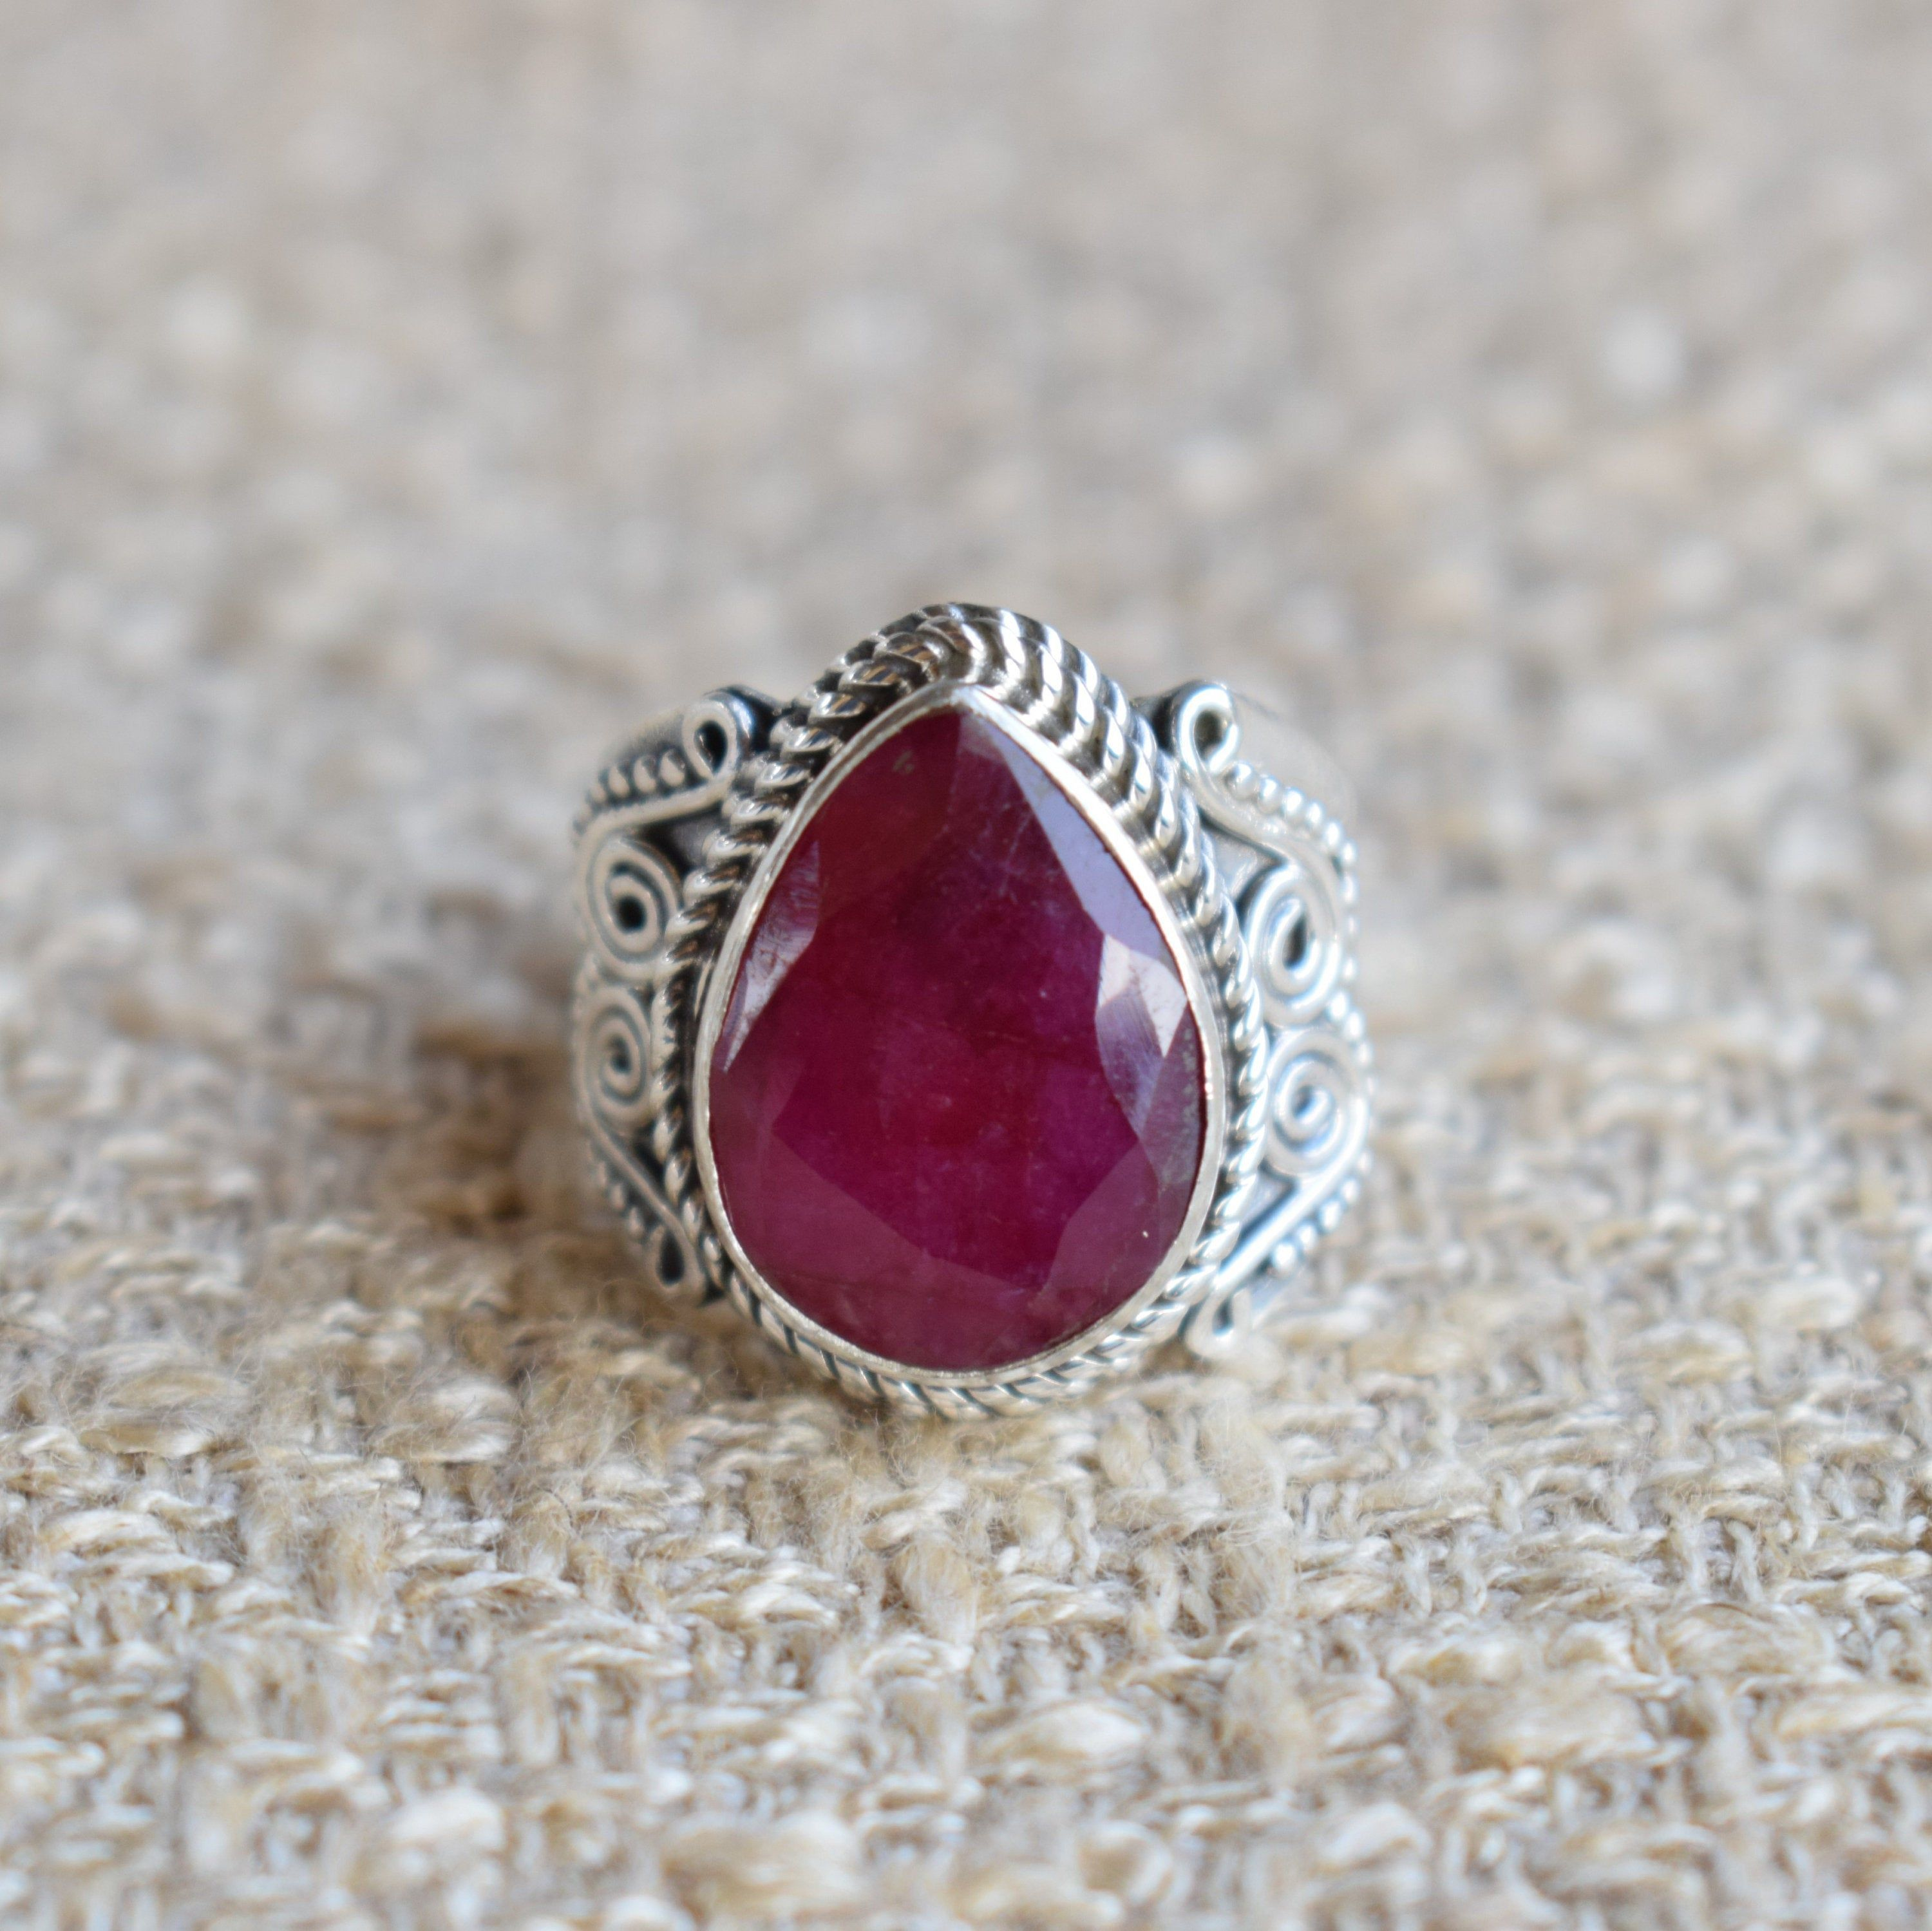 Ruby Ring-Red Ruby Gemstone Ring-Handmade Silver Ring-925 Sterling Silver Ring-Designer Teardrop Ruby Ring-Gift for her-Promise Ring